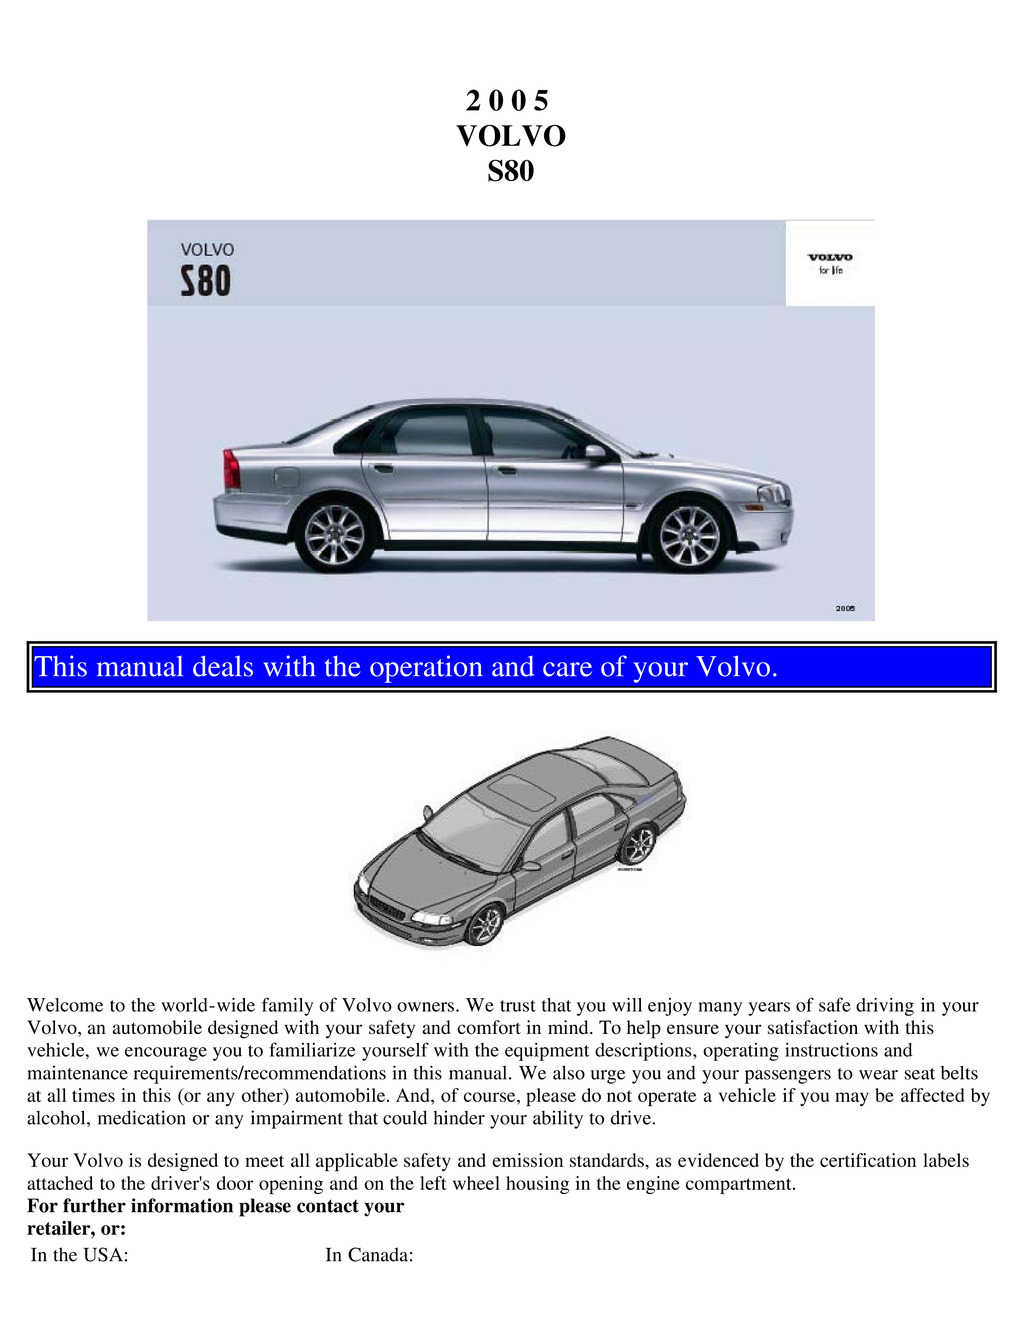 2005 Volvo S80 owners manual